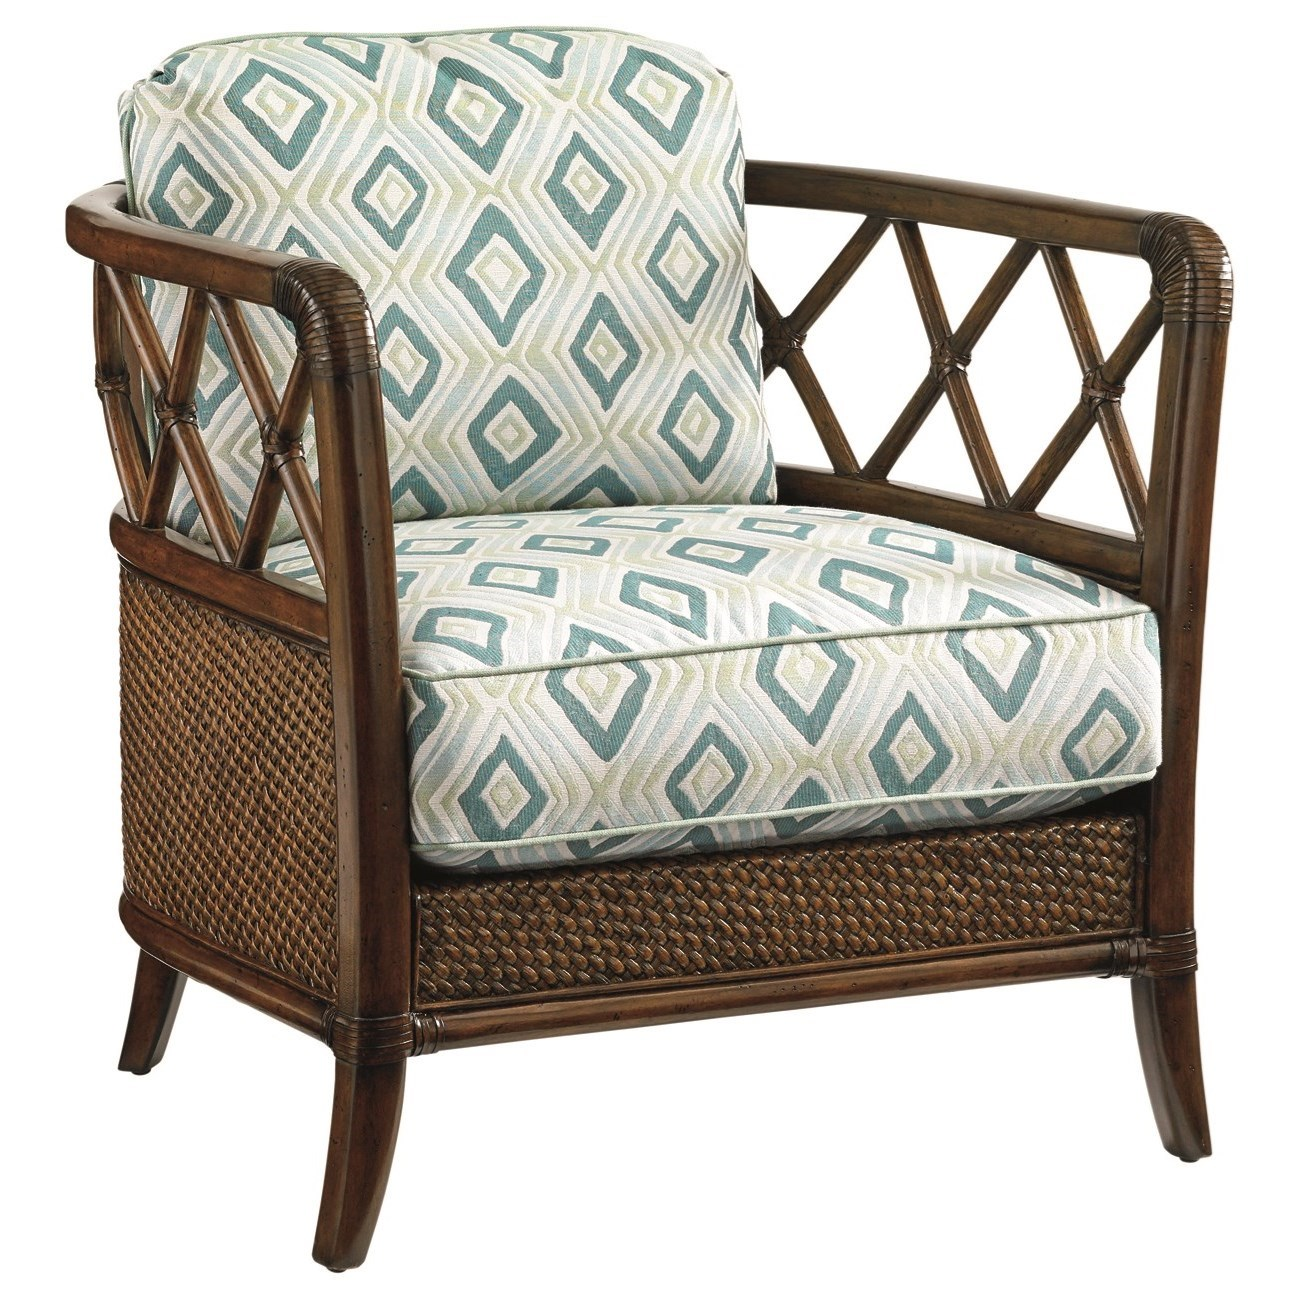 Bali Hai Glen Isle Chair by Tommy Bahama Home at Baer's Furniture